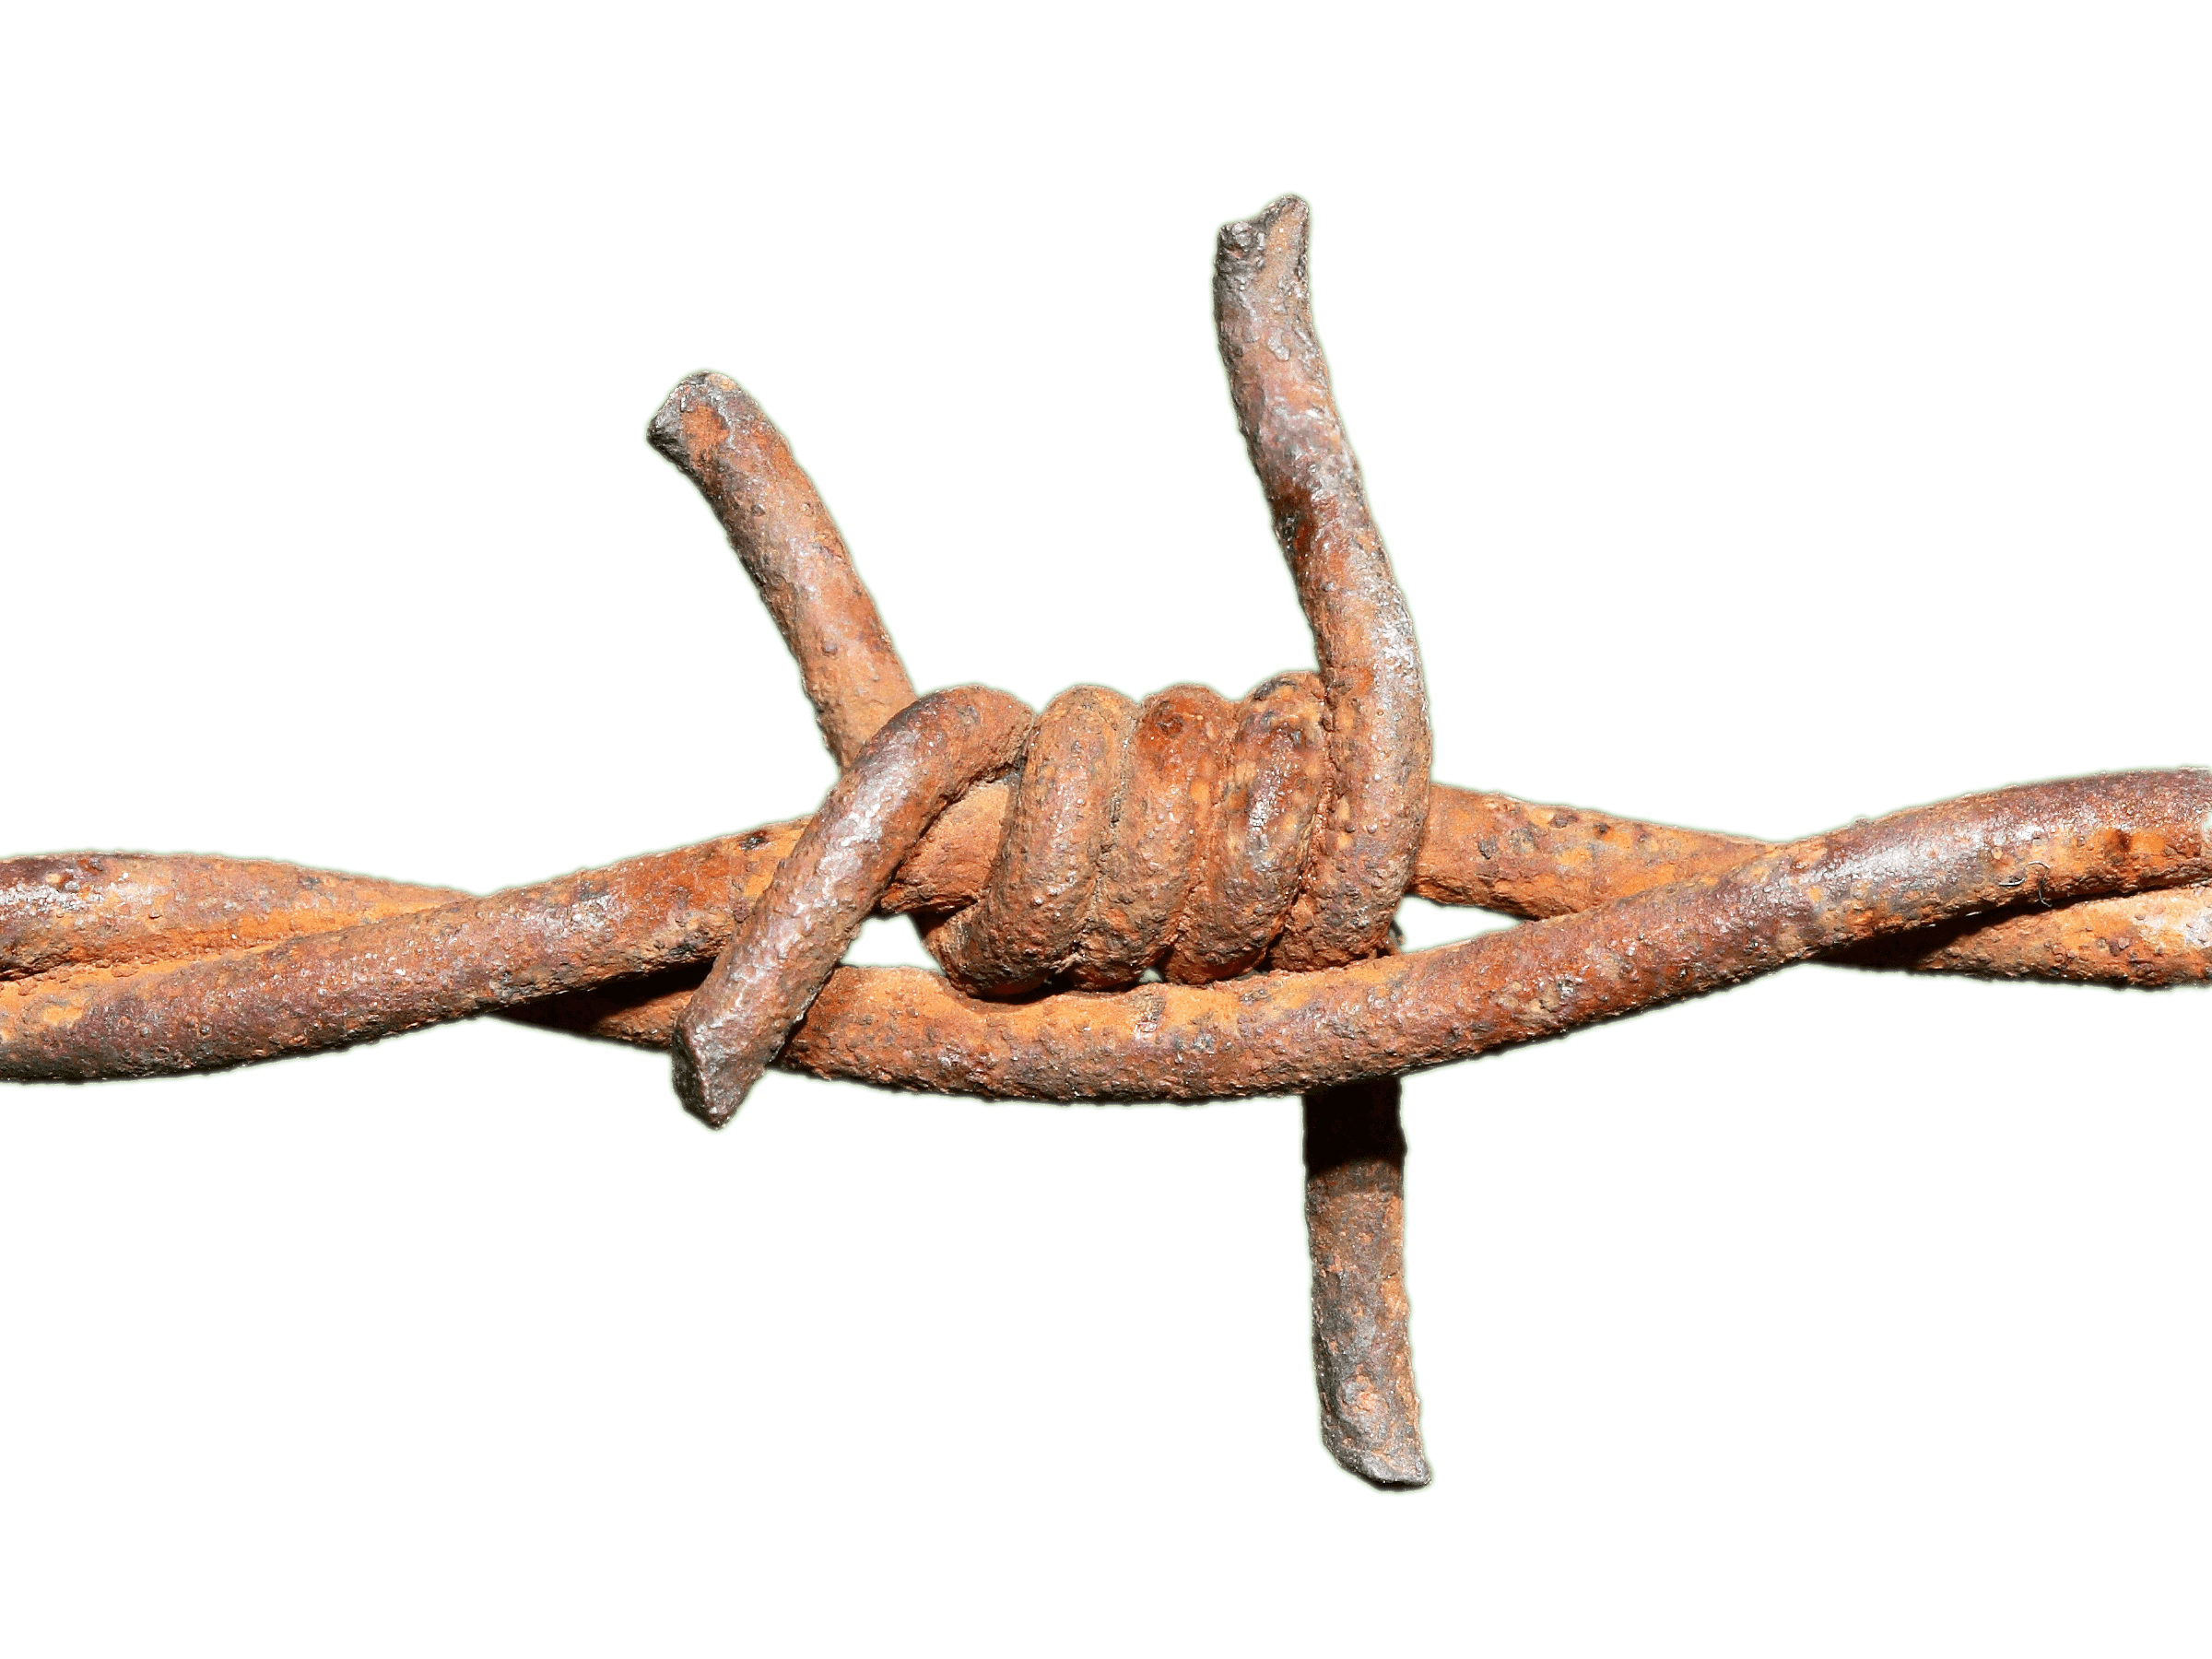 Twig stick png. Barbed wire rusted knot